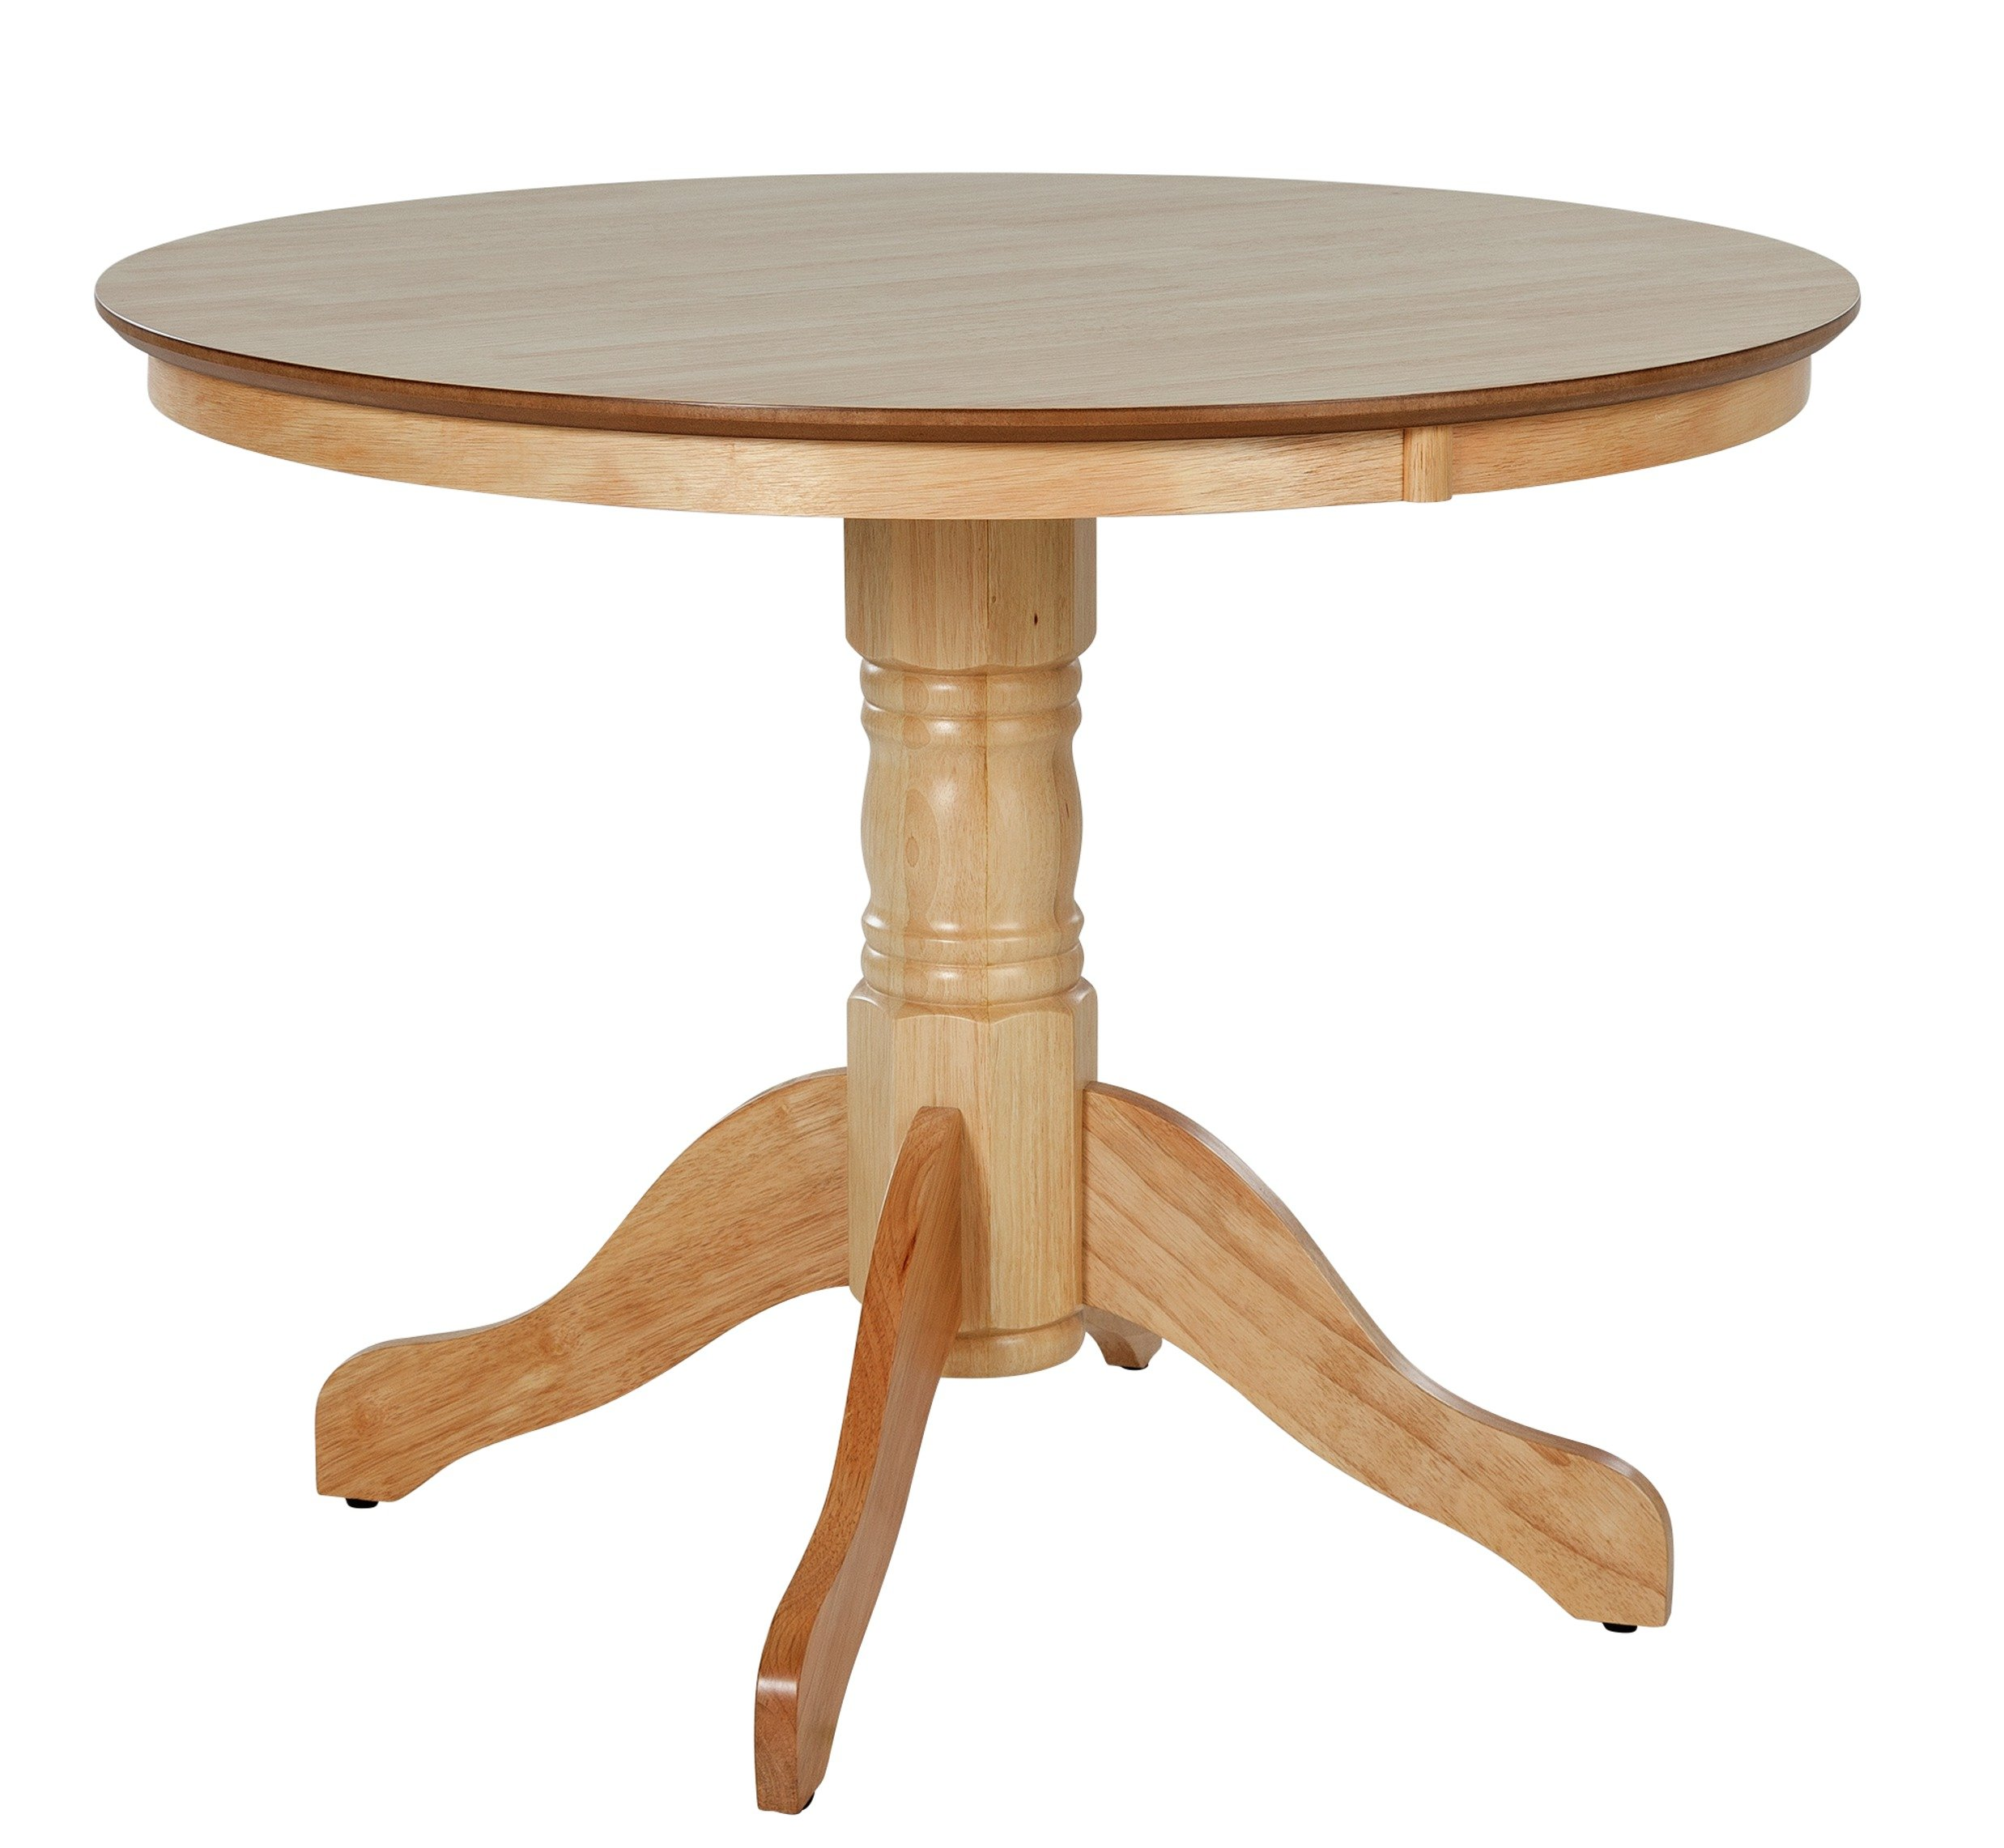 SALE On Collection Kentucky Round Solid Wood Dining Table